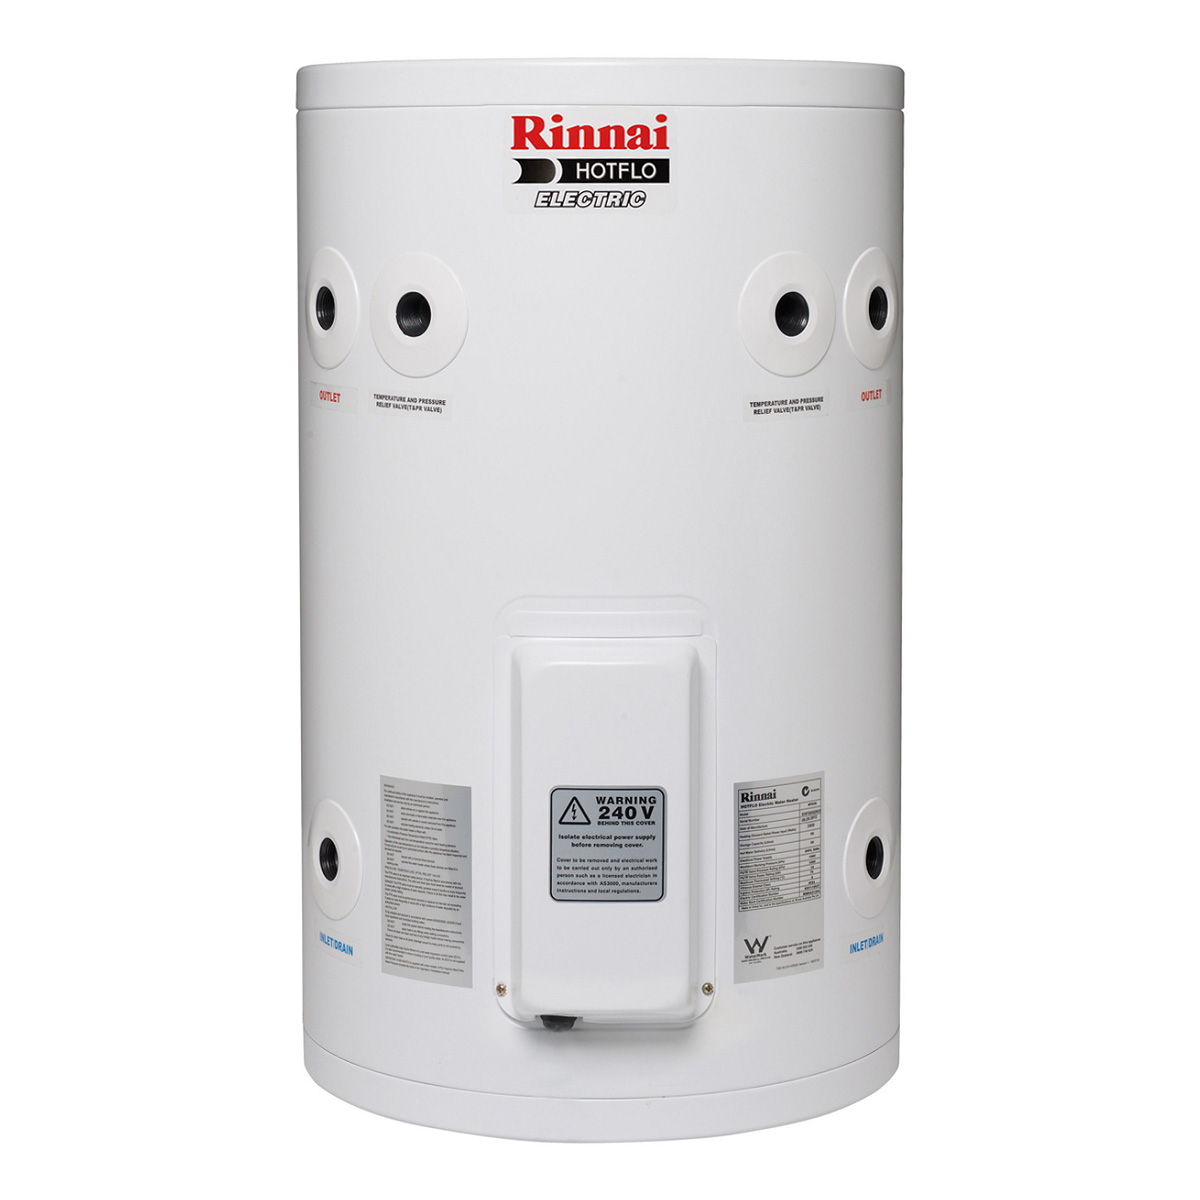 Rinnai EHF50S36 50L Electric Hot Water System